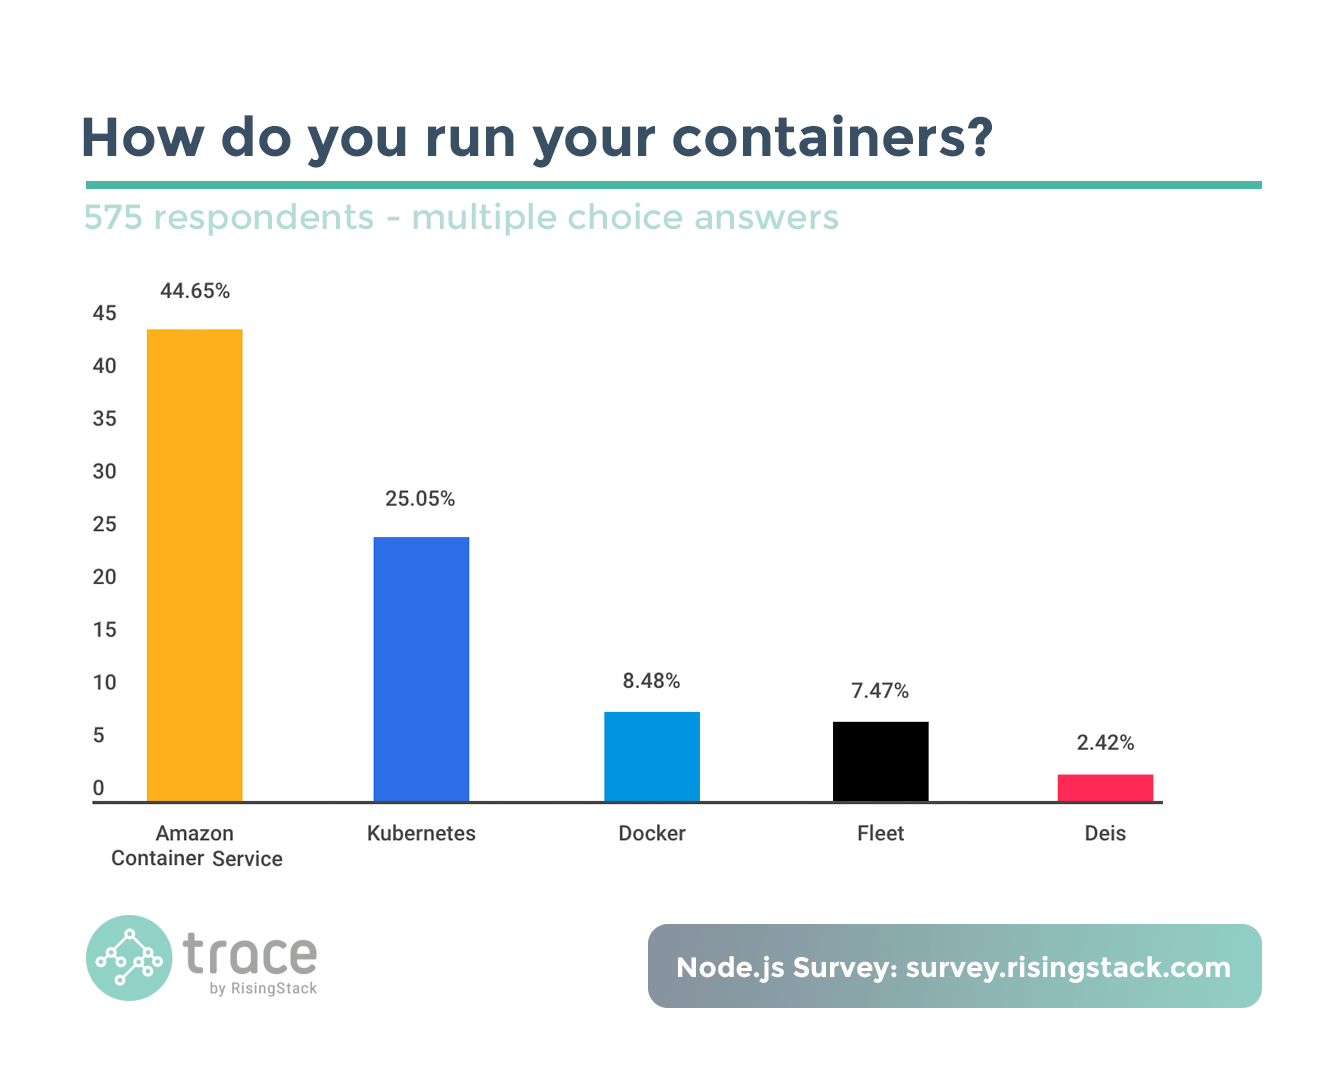 Node.js Survey - How do you run your containers? Amazon Container Service wins.